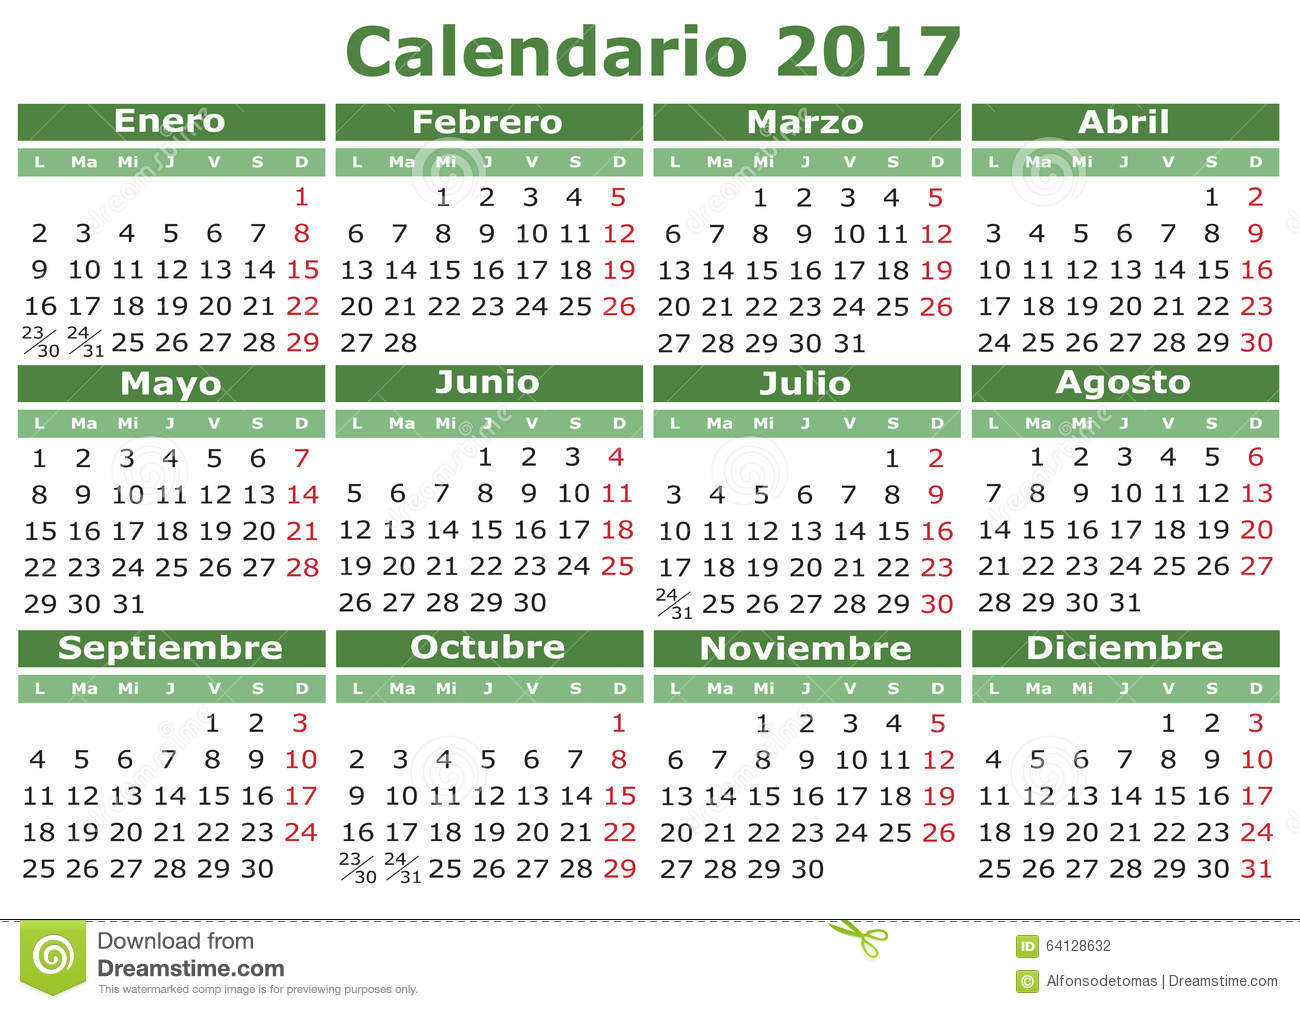 Spanish Calendar 2017 stock vector. Illustration of thursday - 64128632